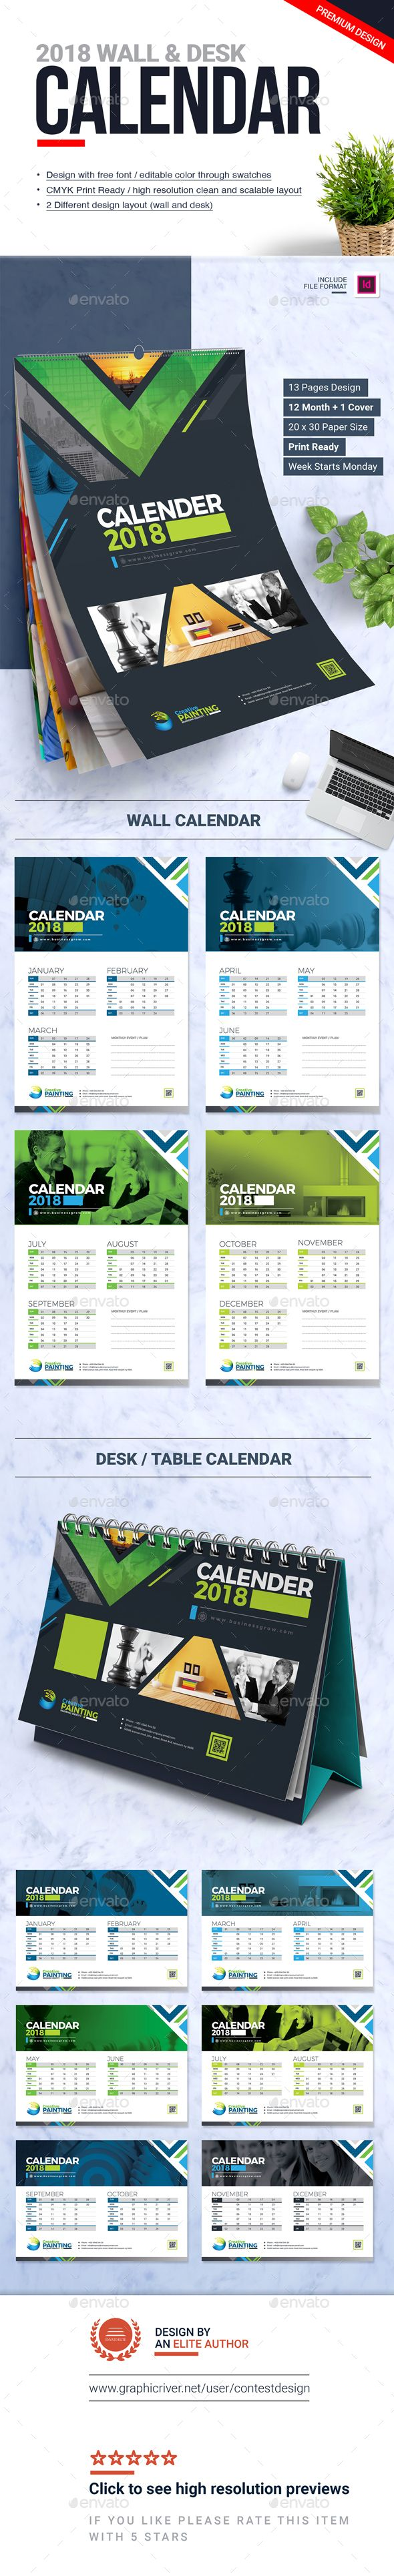 Calendar Design Template Indesign Indd  Wall And Desk